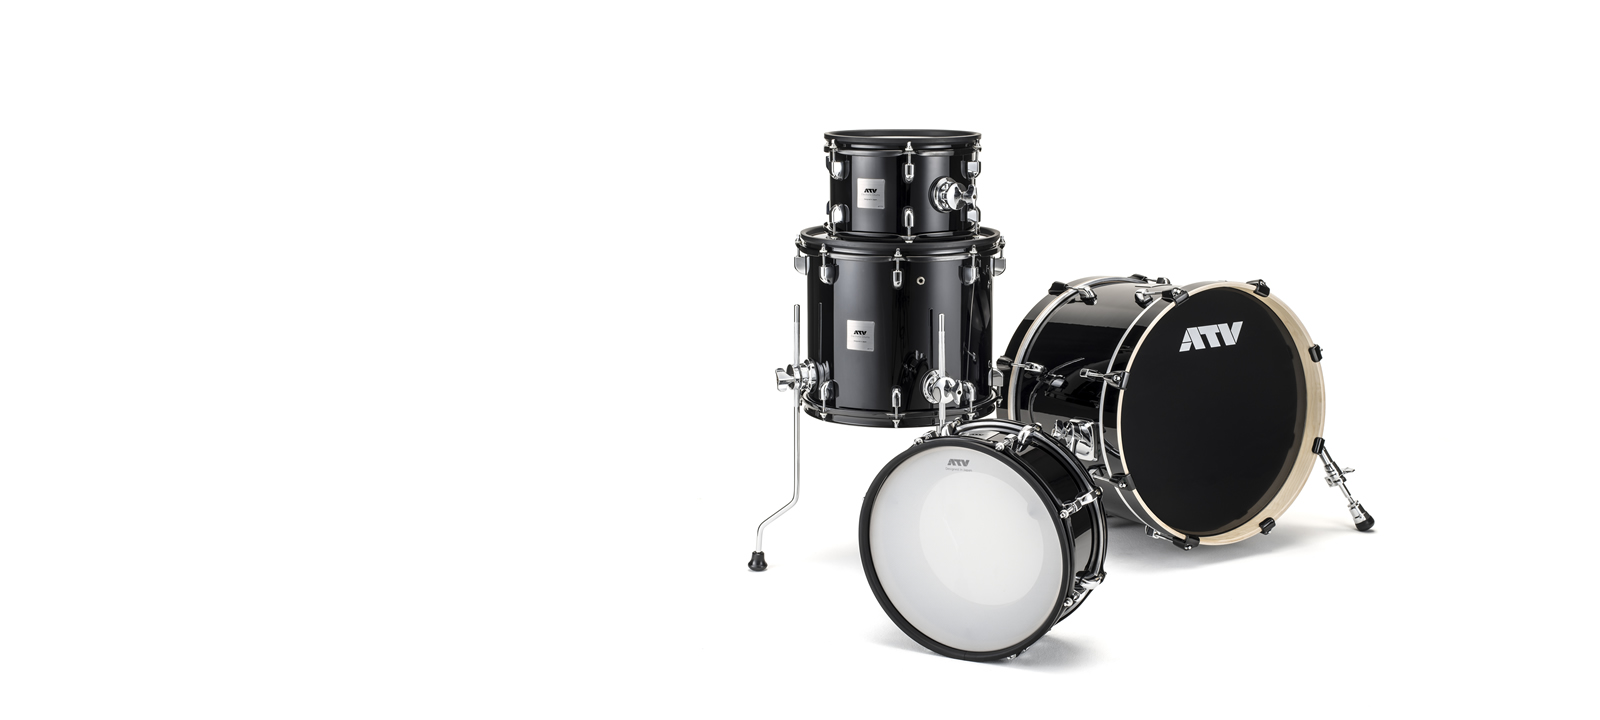 Support | aDrums | Drums | Products | Innovation in electronic